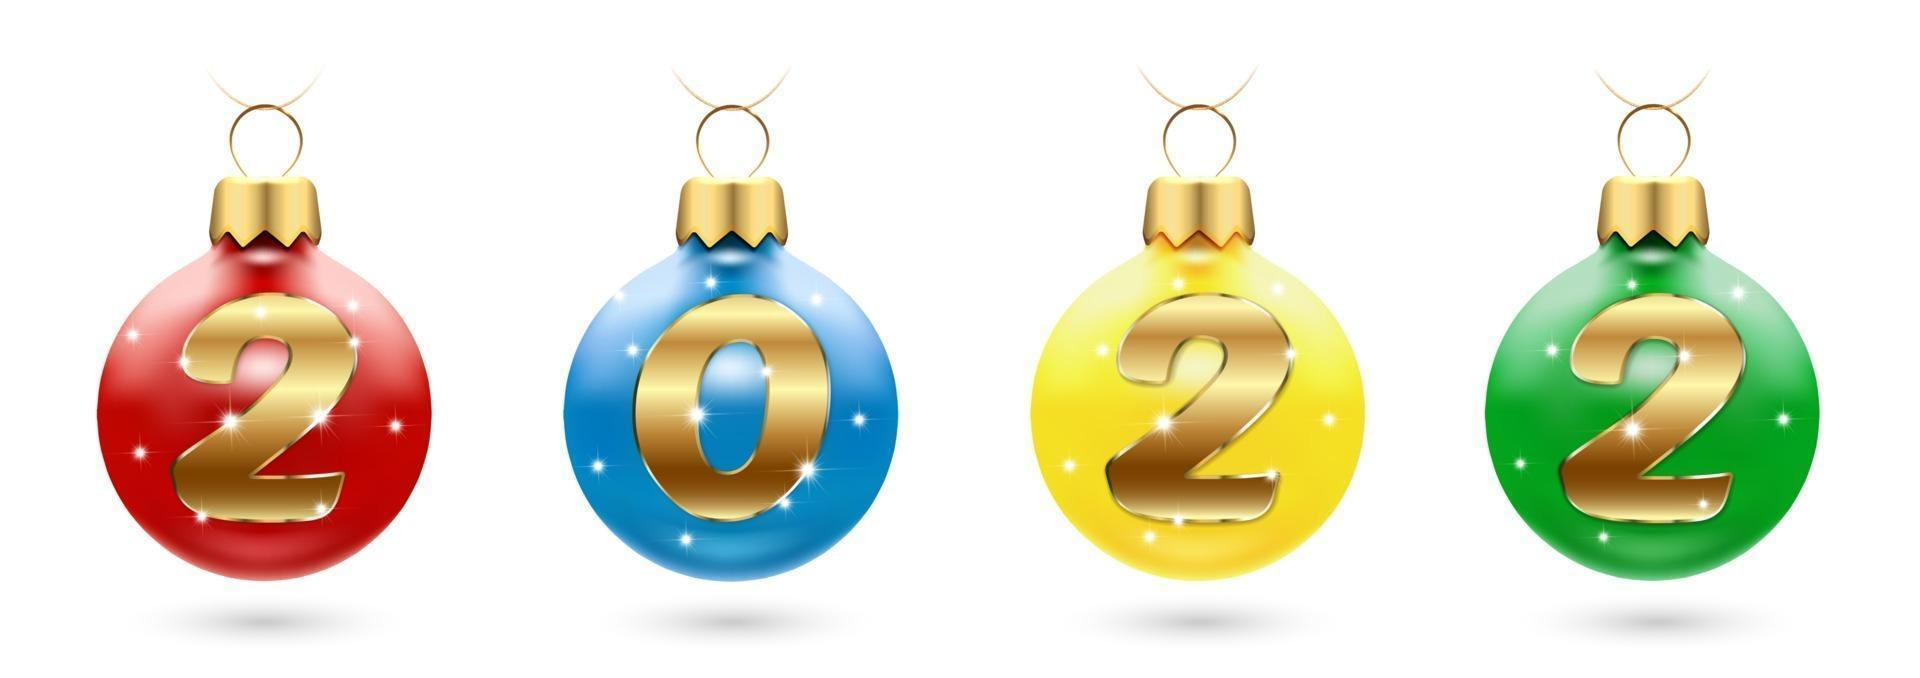 Christmas decorations with numbers 2022 - balls with sparkling diamonds. Happy New Year and Merry Christmas greetings. A set of four toys in different colors. Isolated on a white background. Vector illustration.